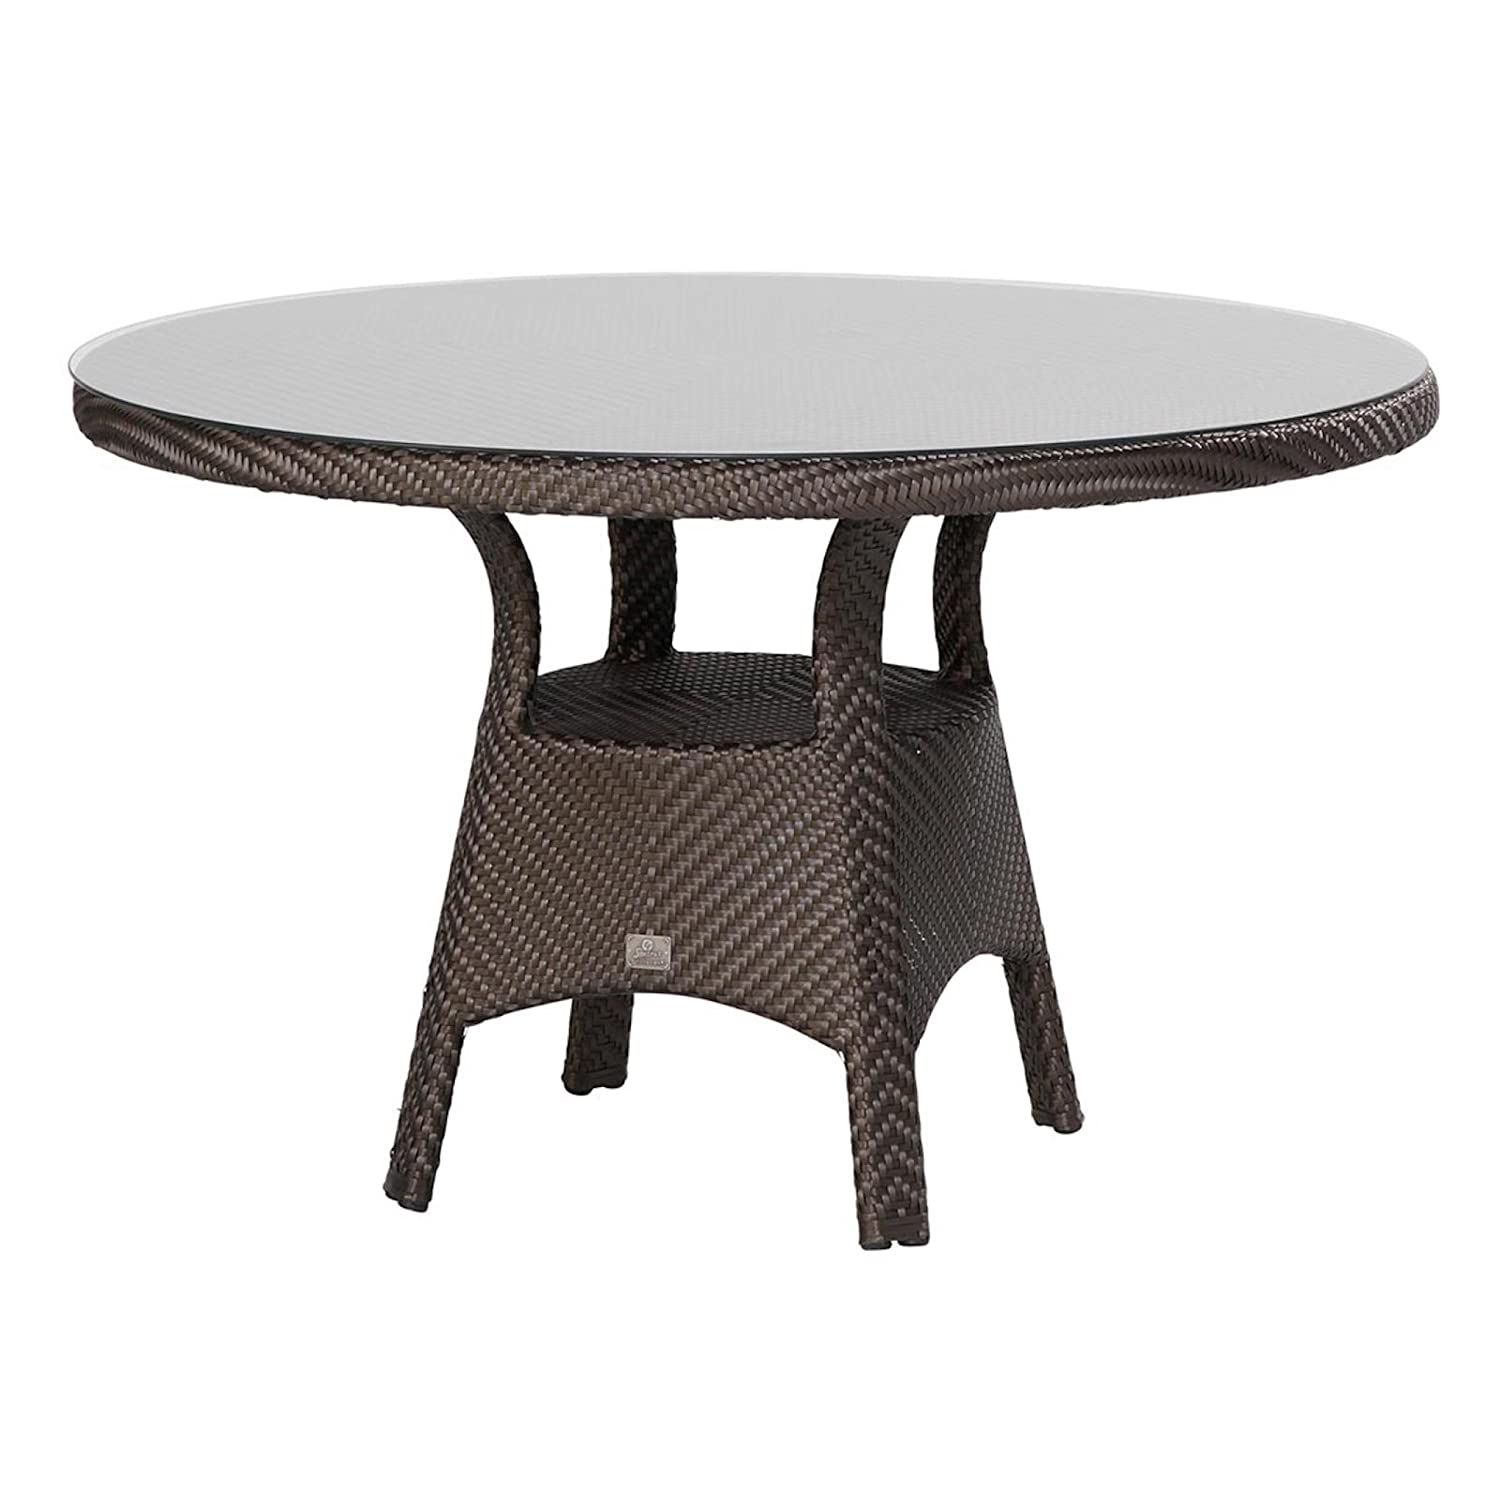 4Seasons Outdoor Refton Dining Table ø 120 cm Fishbone Titanium inkl Glasplatte